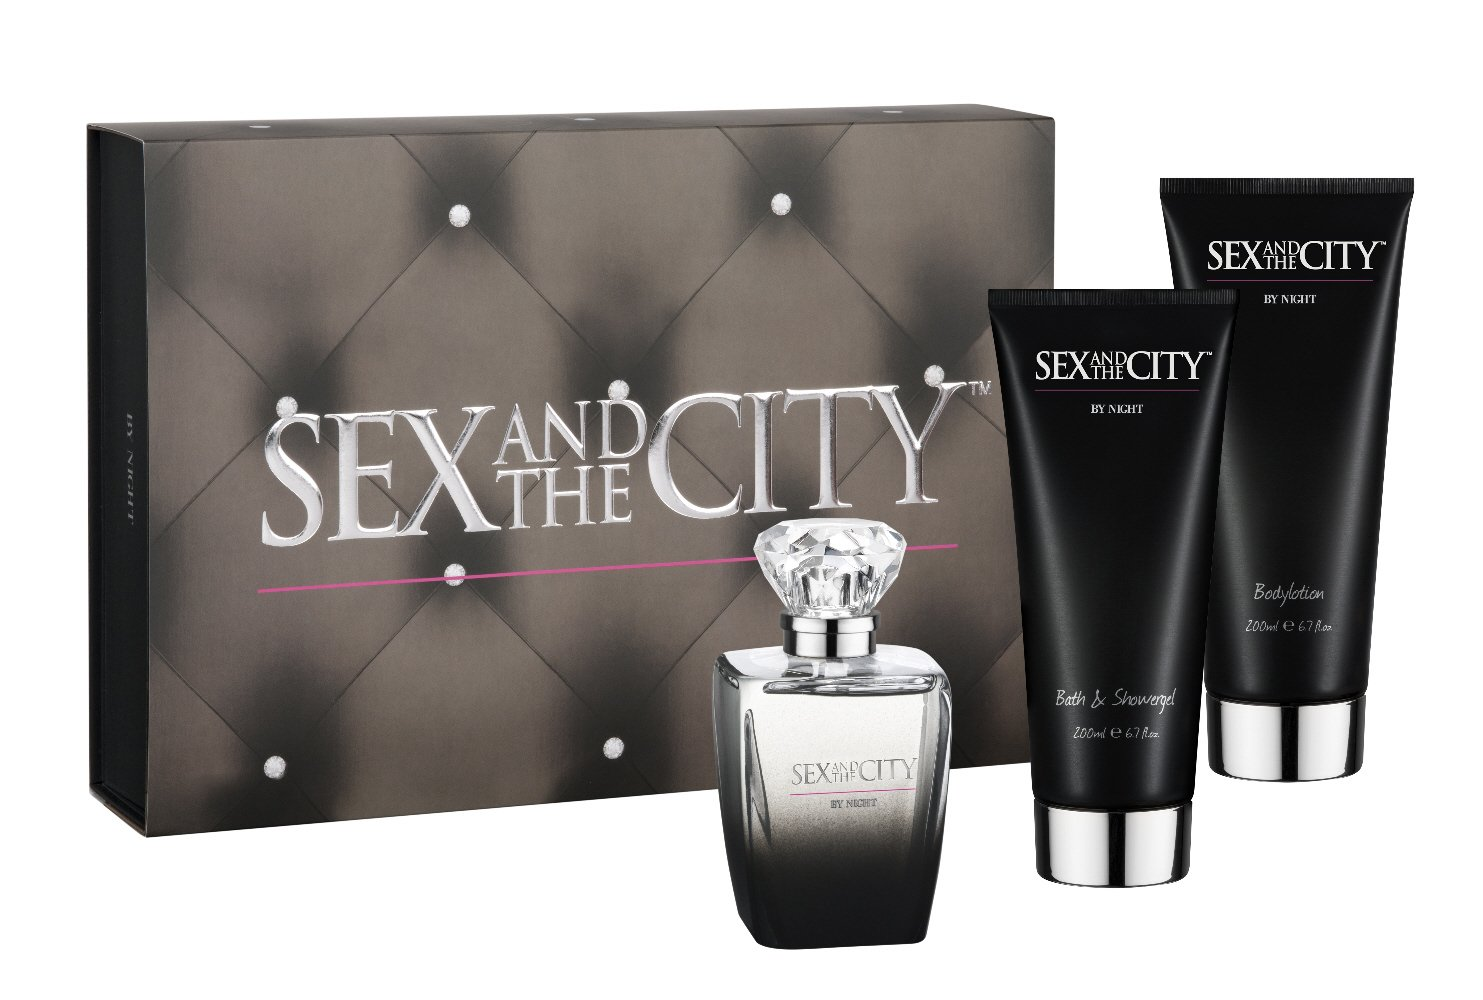 Best erotic body lotion For Men That Smell Great & Work